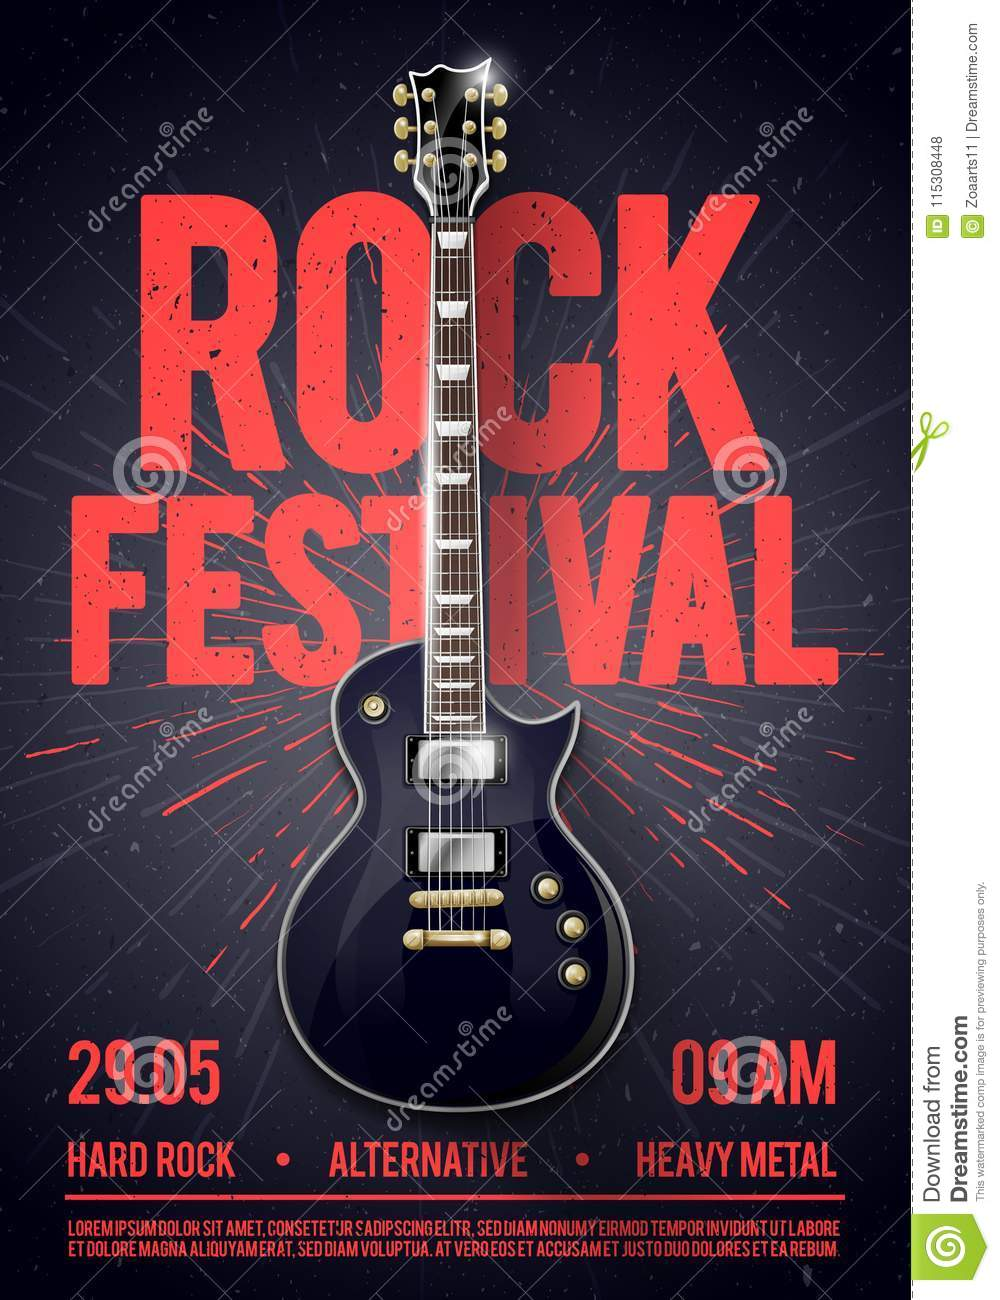 Vector illustration rock festival concert party flyer or posterdesign template with guitar, place for text and cool effects in the